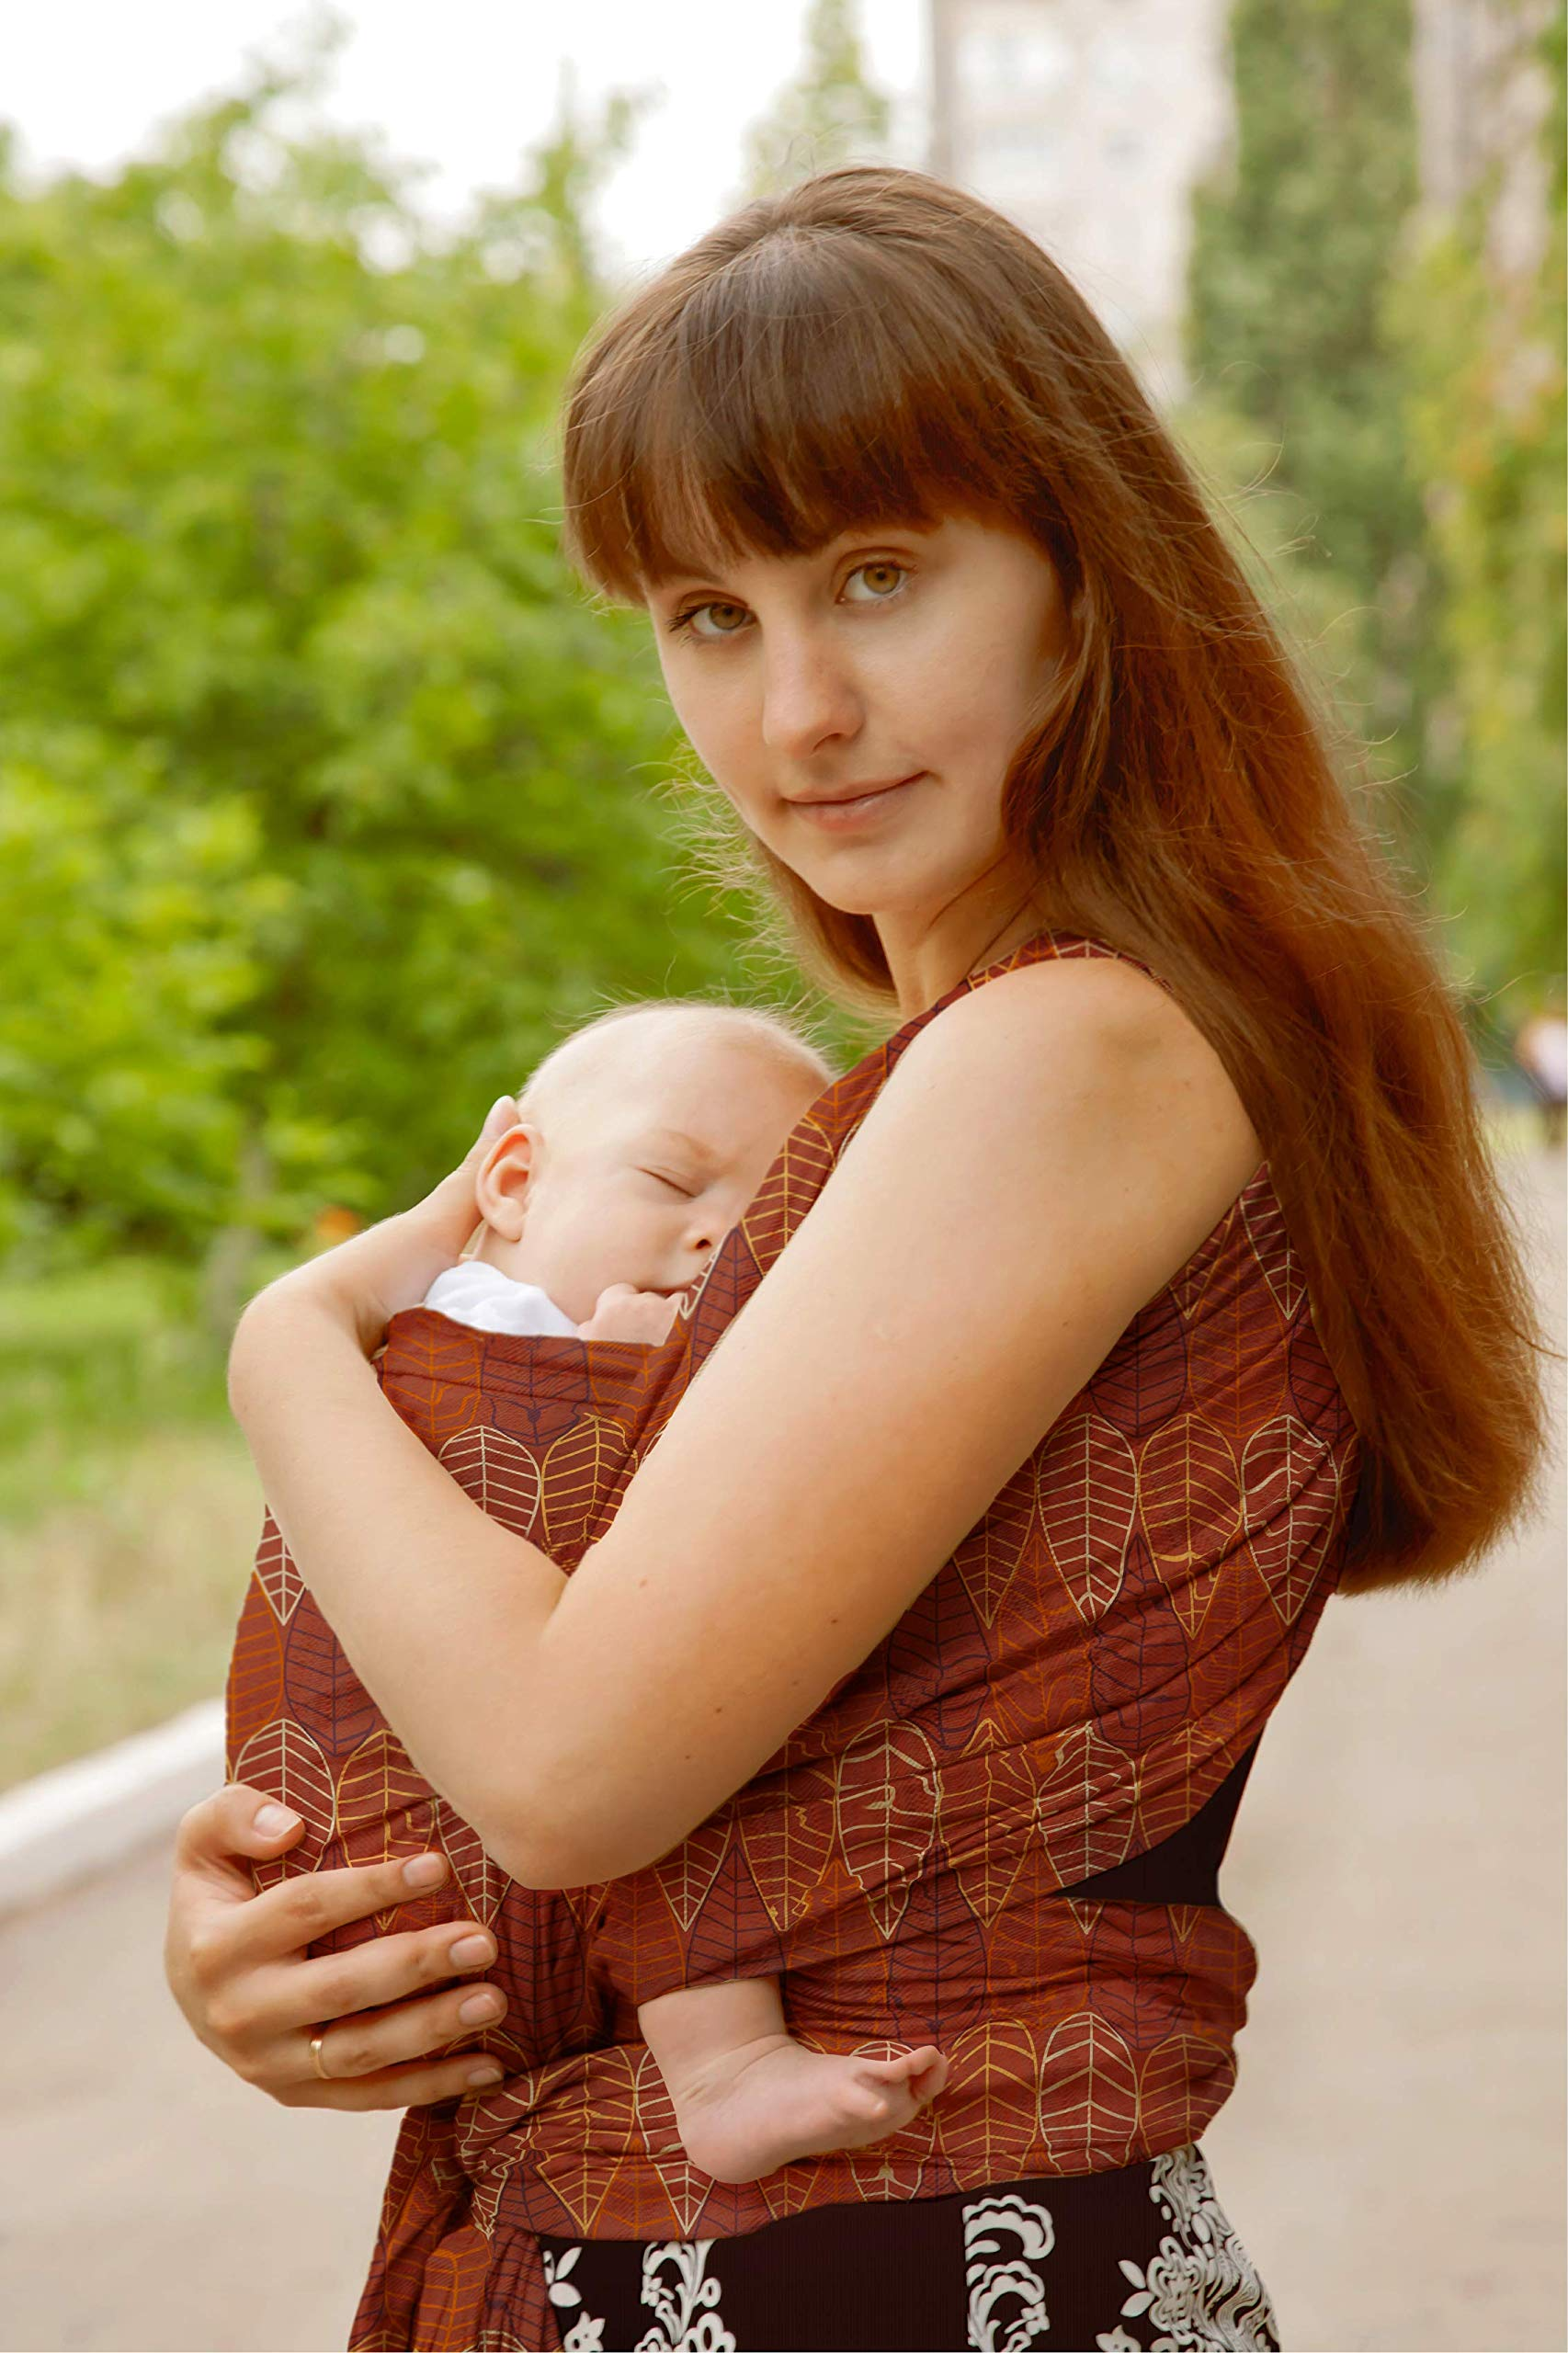 Hypoallergenic GOTS Organic Certified Cotton Baby Wrap Sling Carrier | No Antracene | Certifications: CPSIA, GOTS, CCPA, UK/EU, Safety Tested | Washing & Drying Machine | Newborn | Infant | EU Brand  PiccolOrganics